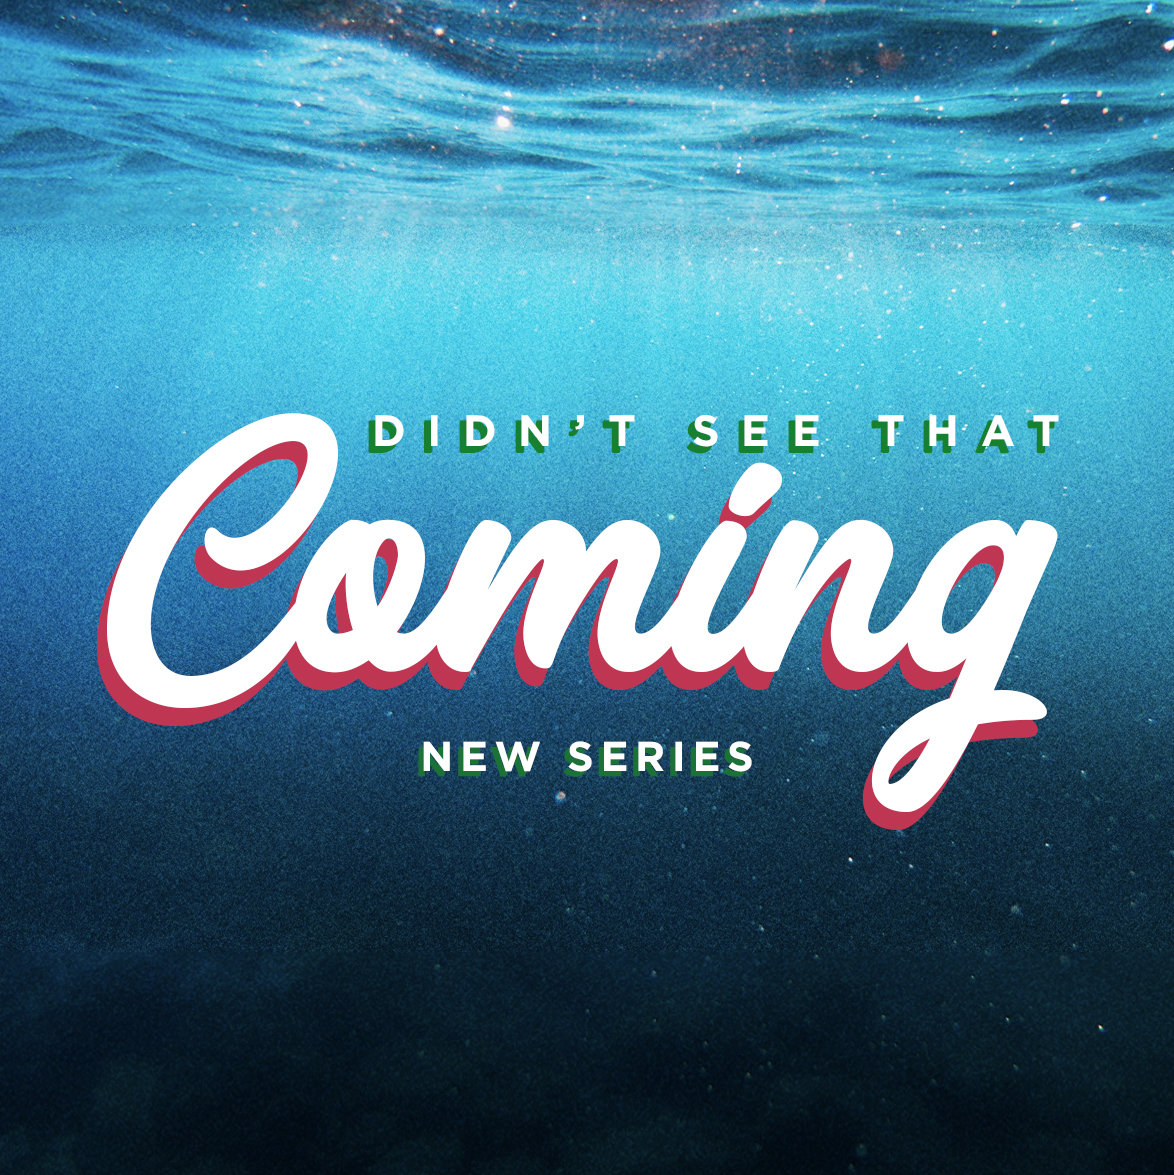 Group Questions - We're in week 4 of Didn't See That Coming today! You can find our questions here.